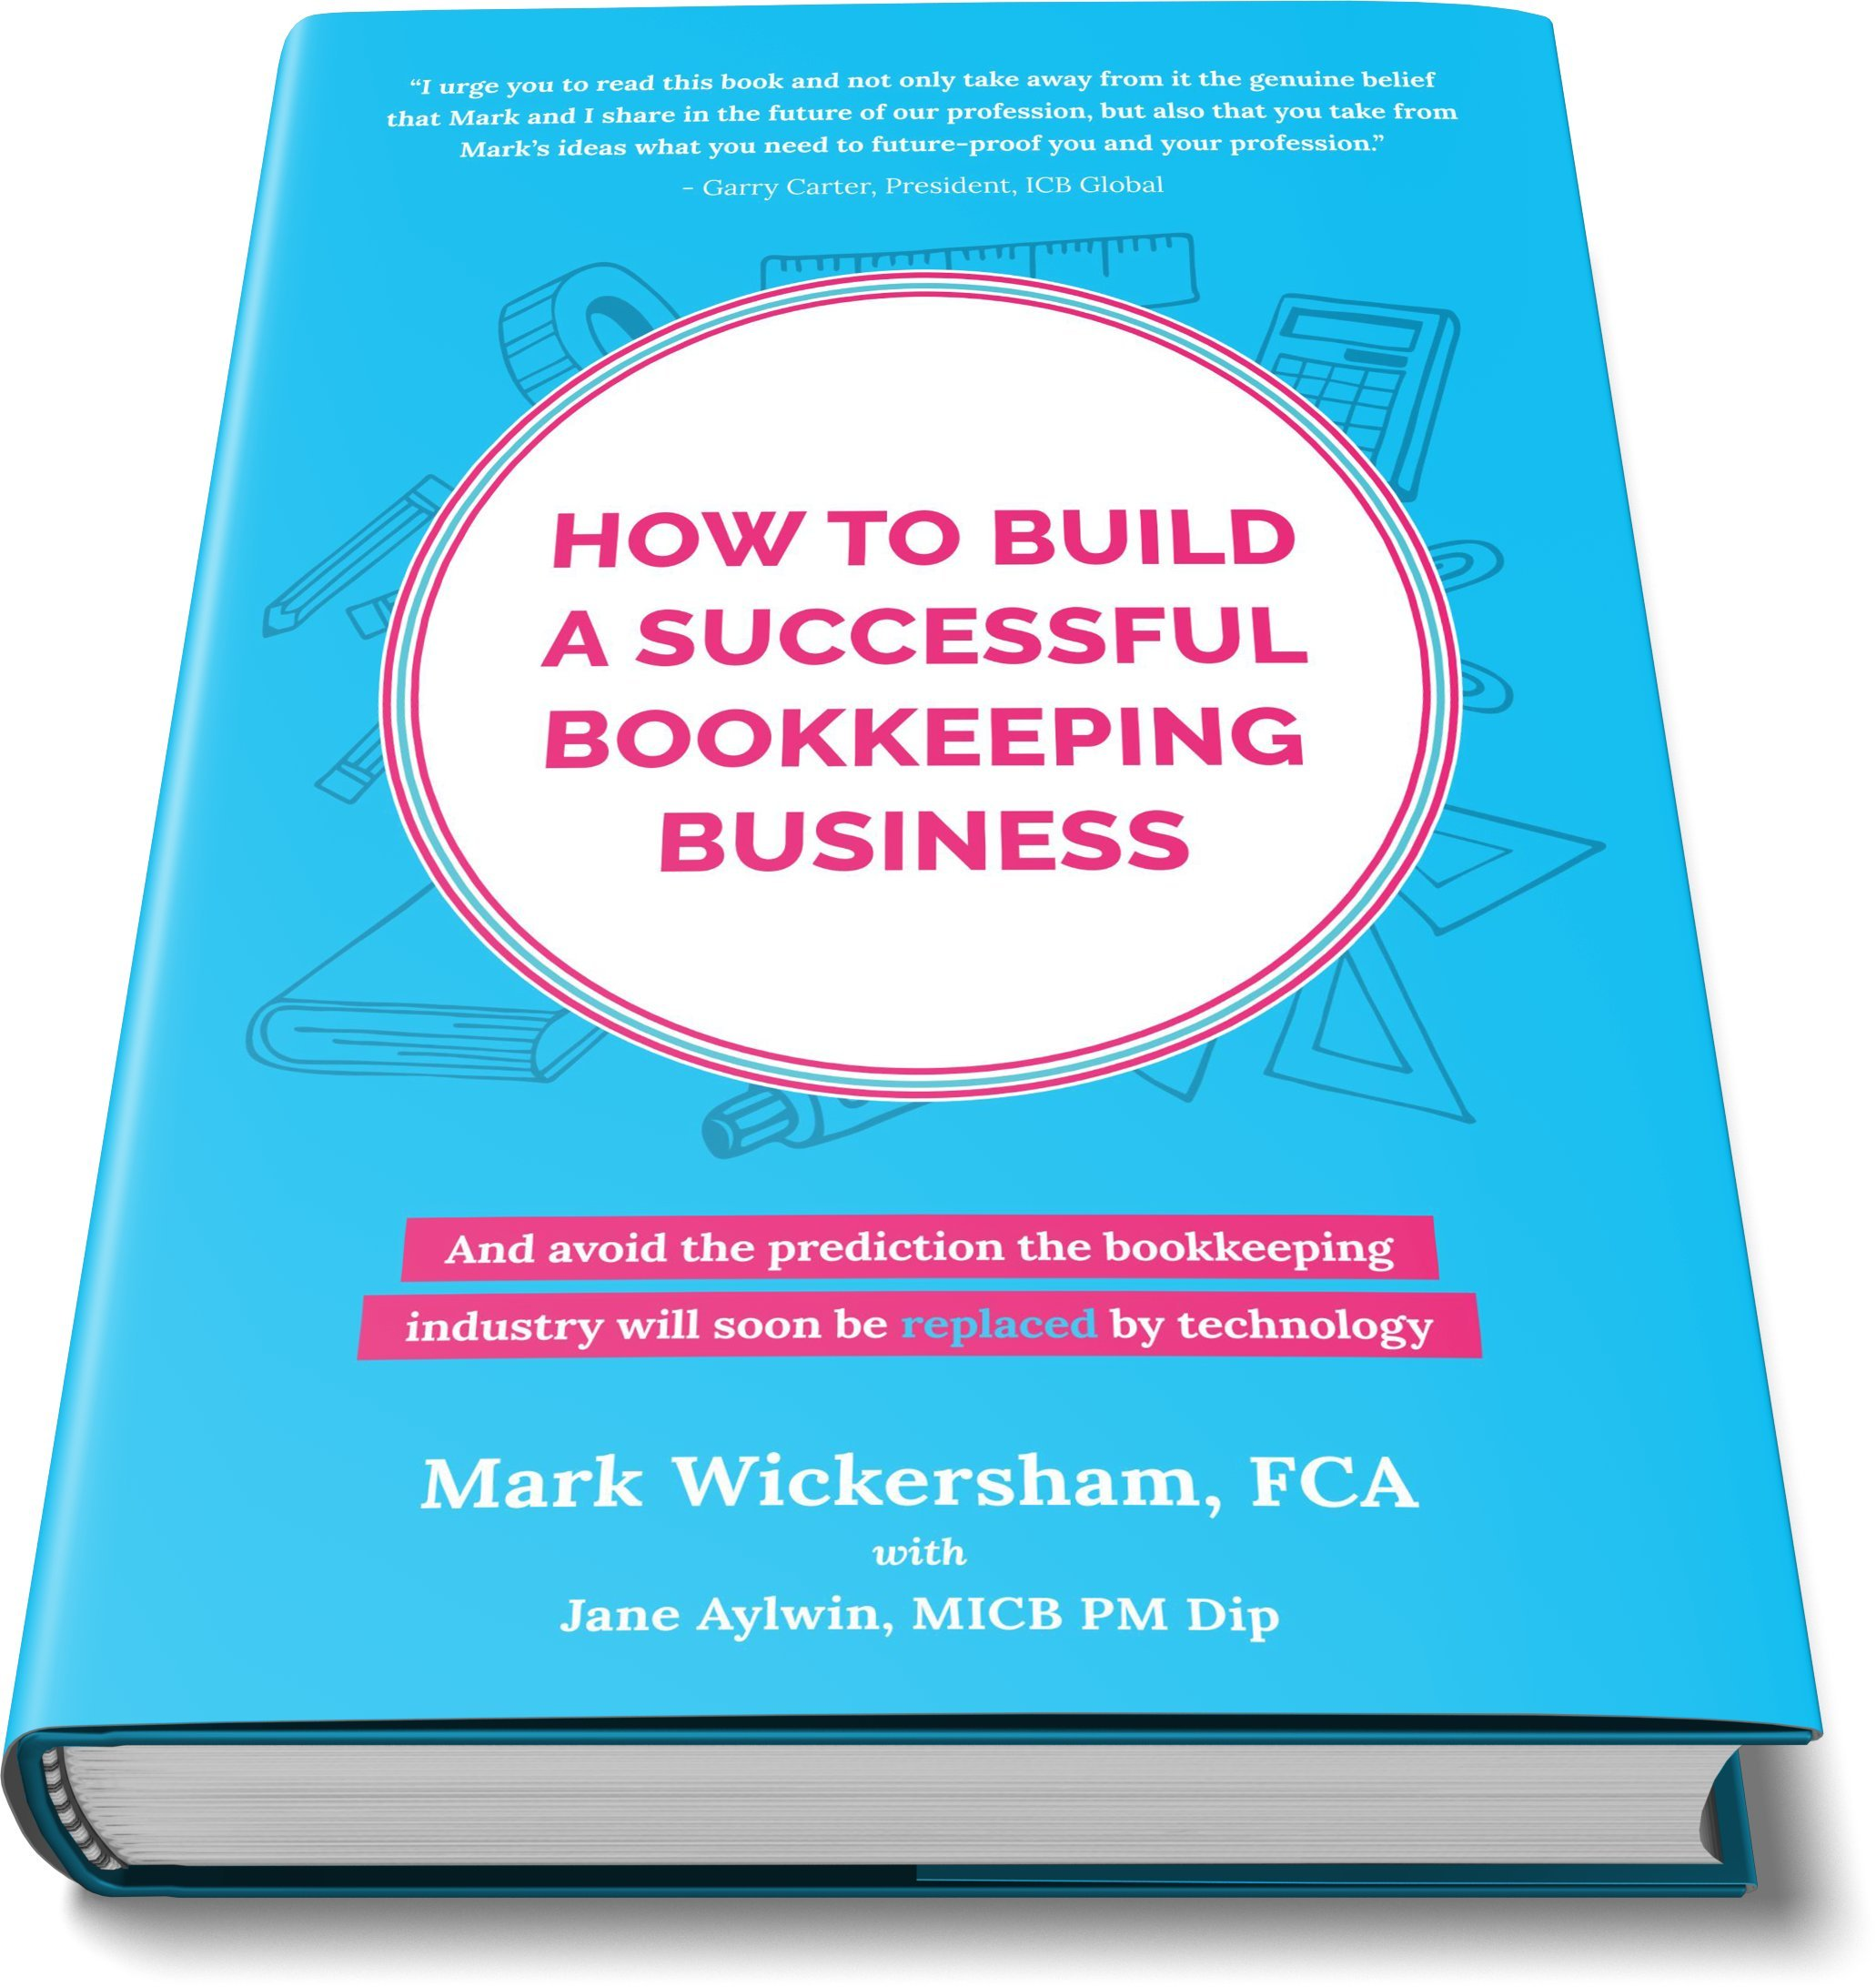 How to build a successful bookkeeping business the essential guide how to build a successful bookkeeping business the essential guide for bookkeepers in the new cloud economy 1 amazon mark wickersham malvernweather Image collections